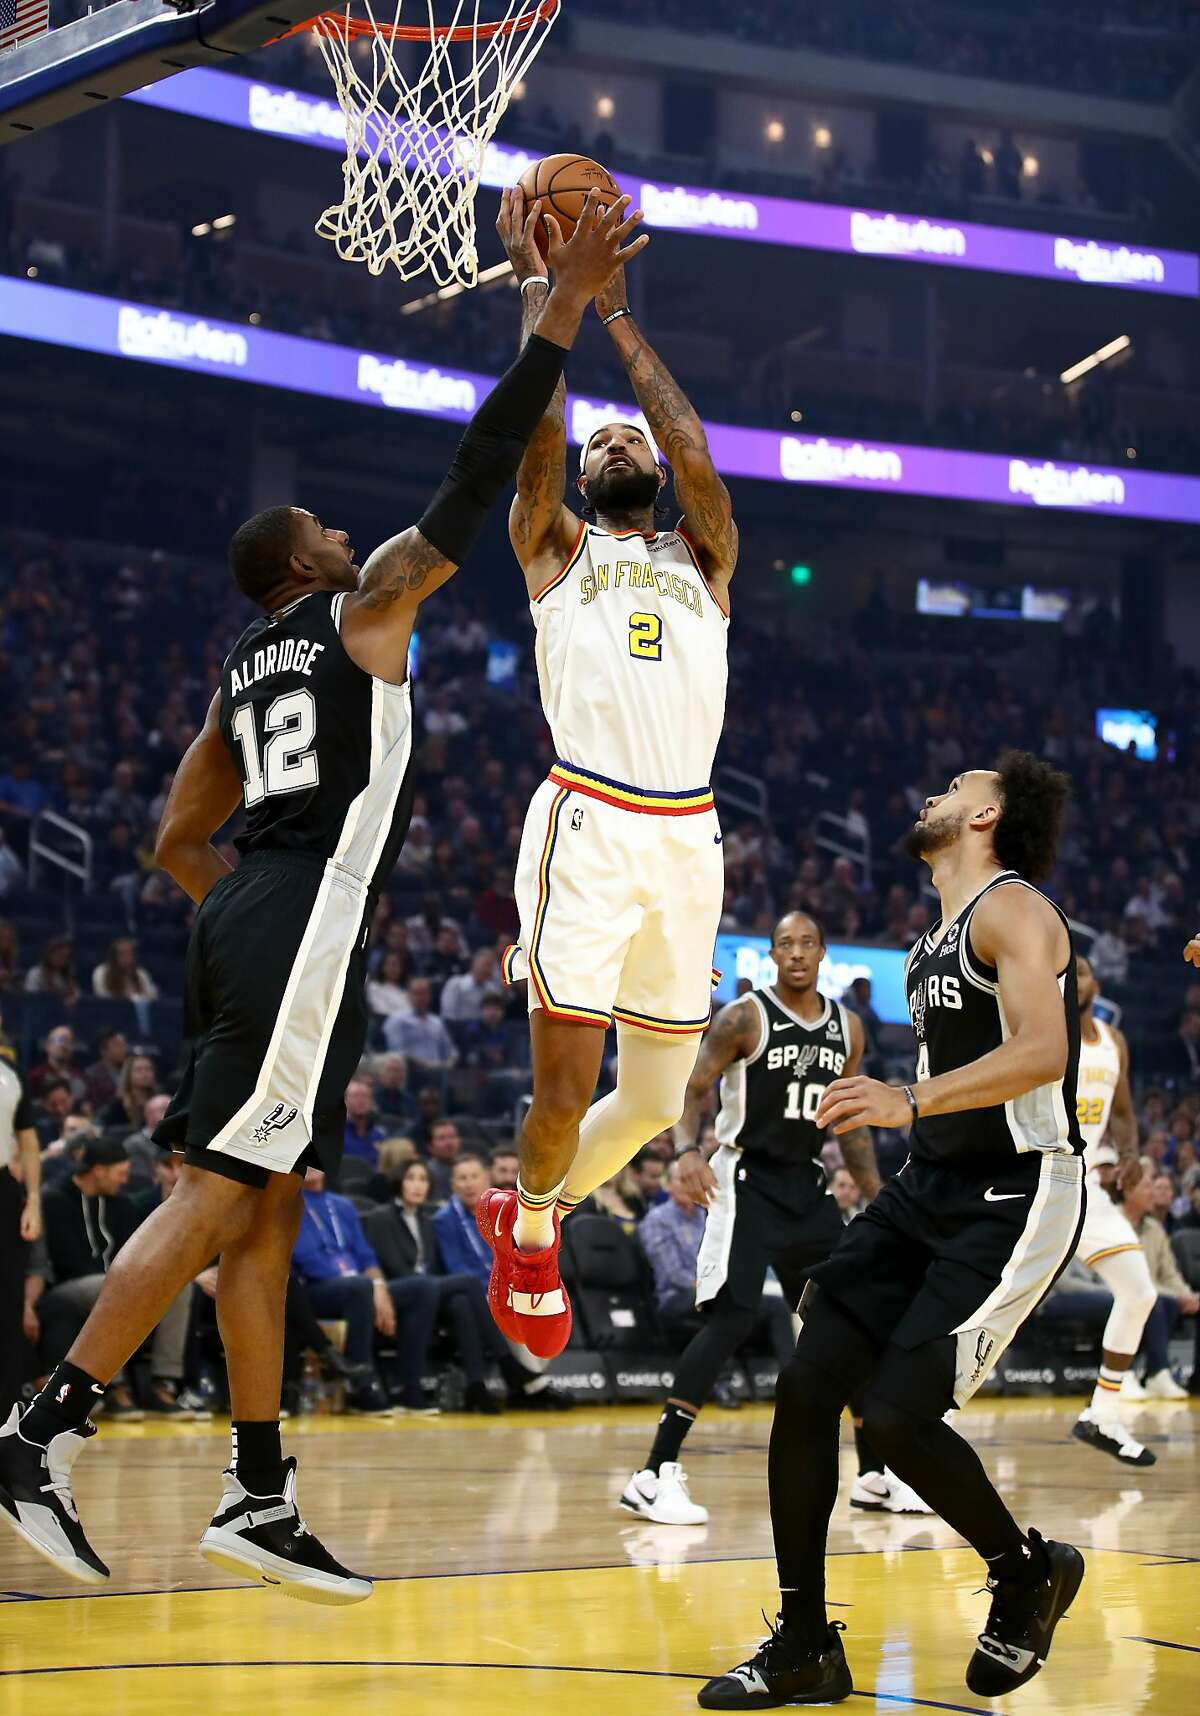 FILE - Willie Cauley-Stein #2 of the Golden State Warriors goes up for a shot against LaMarcus Aldridge #12 of the San Antonio Spurs at Chase Center on November 01, 2019 in San Francisco, California.